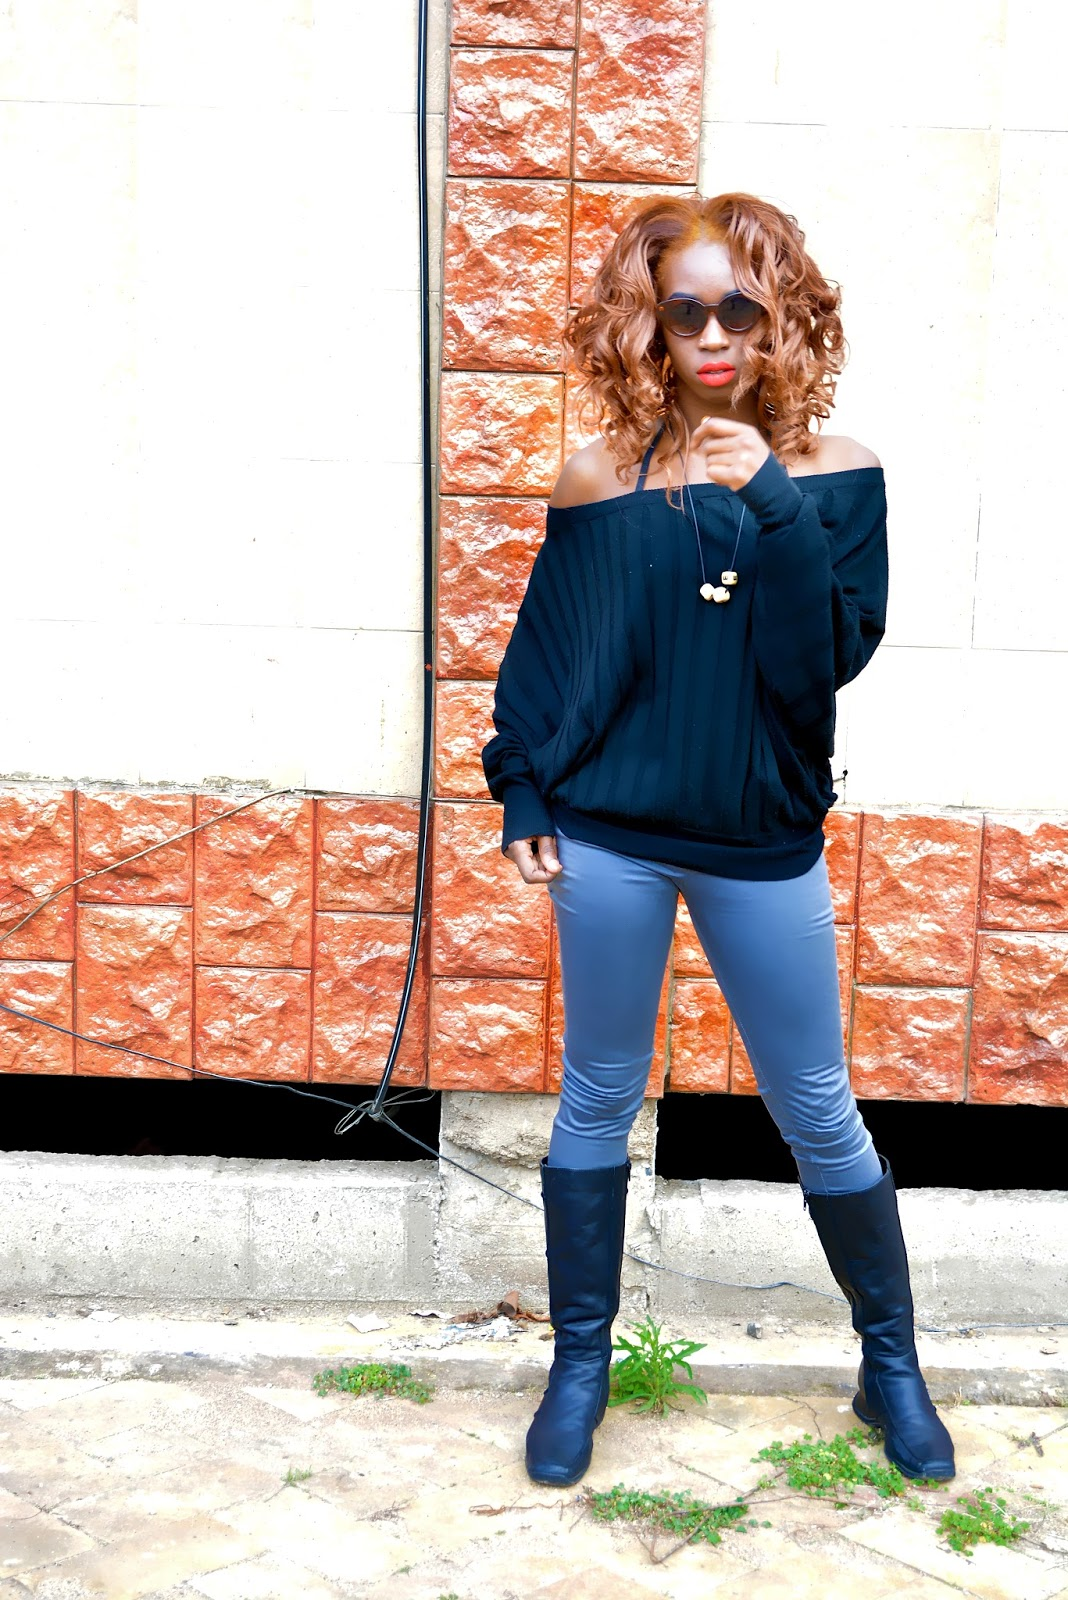 off shoulder tops, pants, boots, winter outfit, rainny weather outfits, what to wear during winter, what to wear during the rainy season. style with Ezil, Ezil, Kfrican fashion blogger, Kenyan fashion blogger.